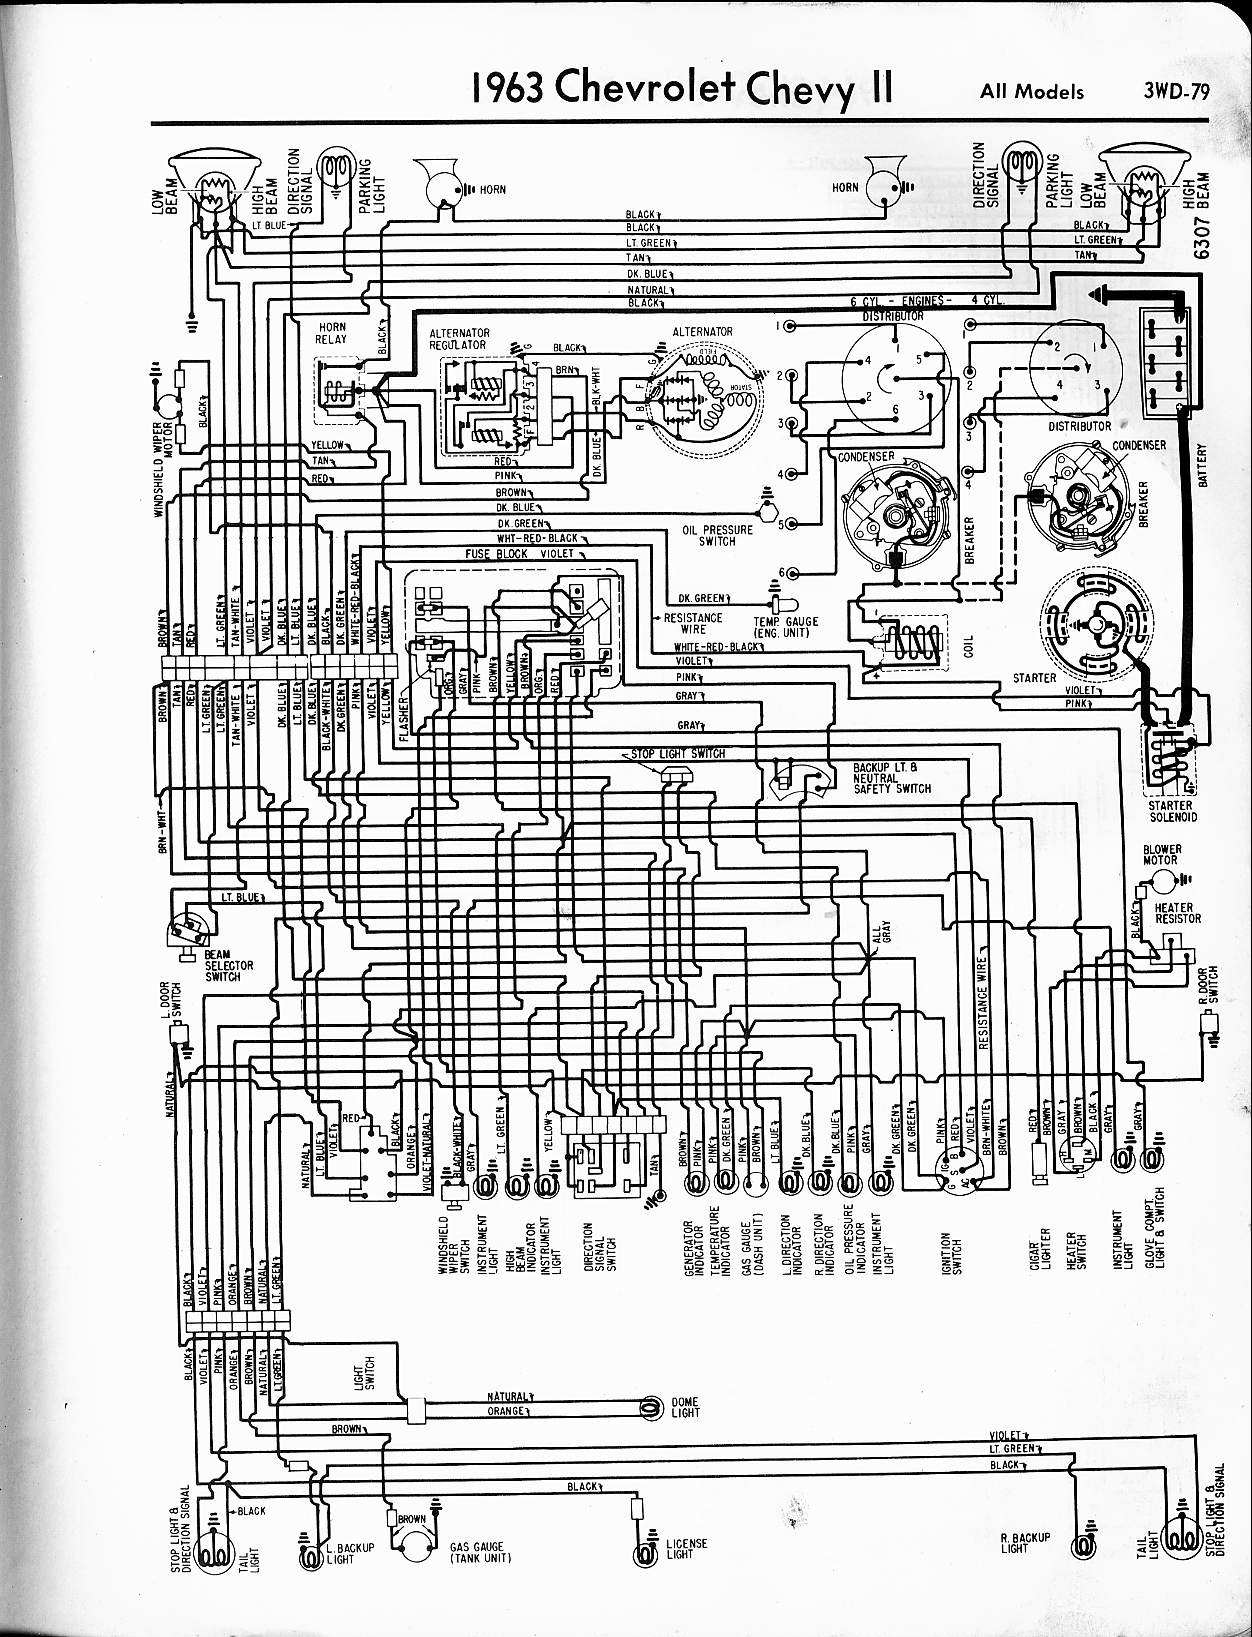 MWireChev63_3WD 079 57 65 chevy wiring diagrams 1970 chevelle dash wiring diagram at couponss.co